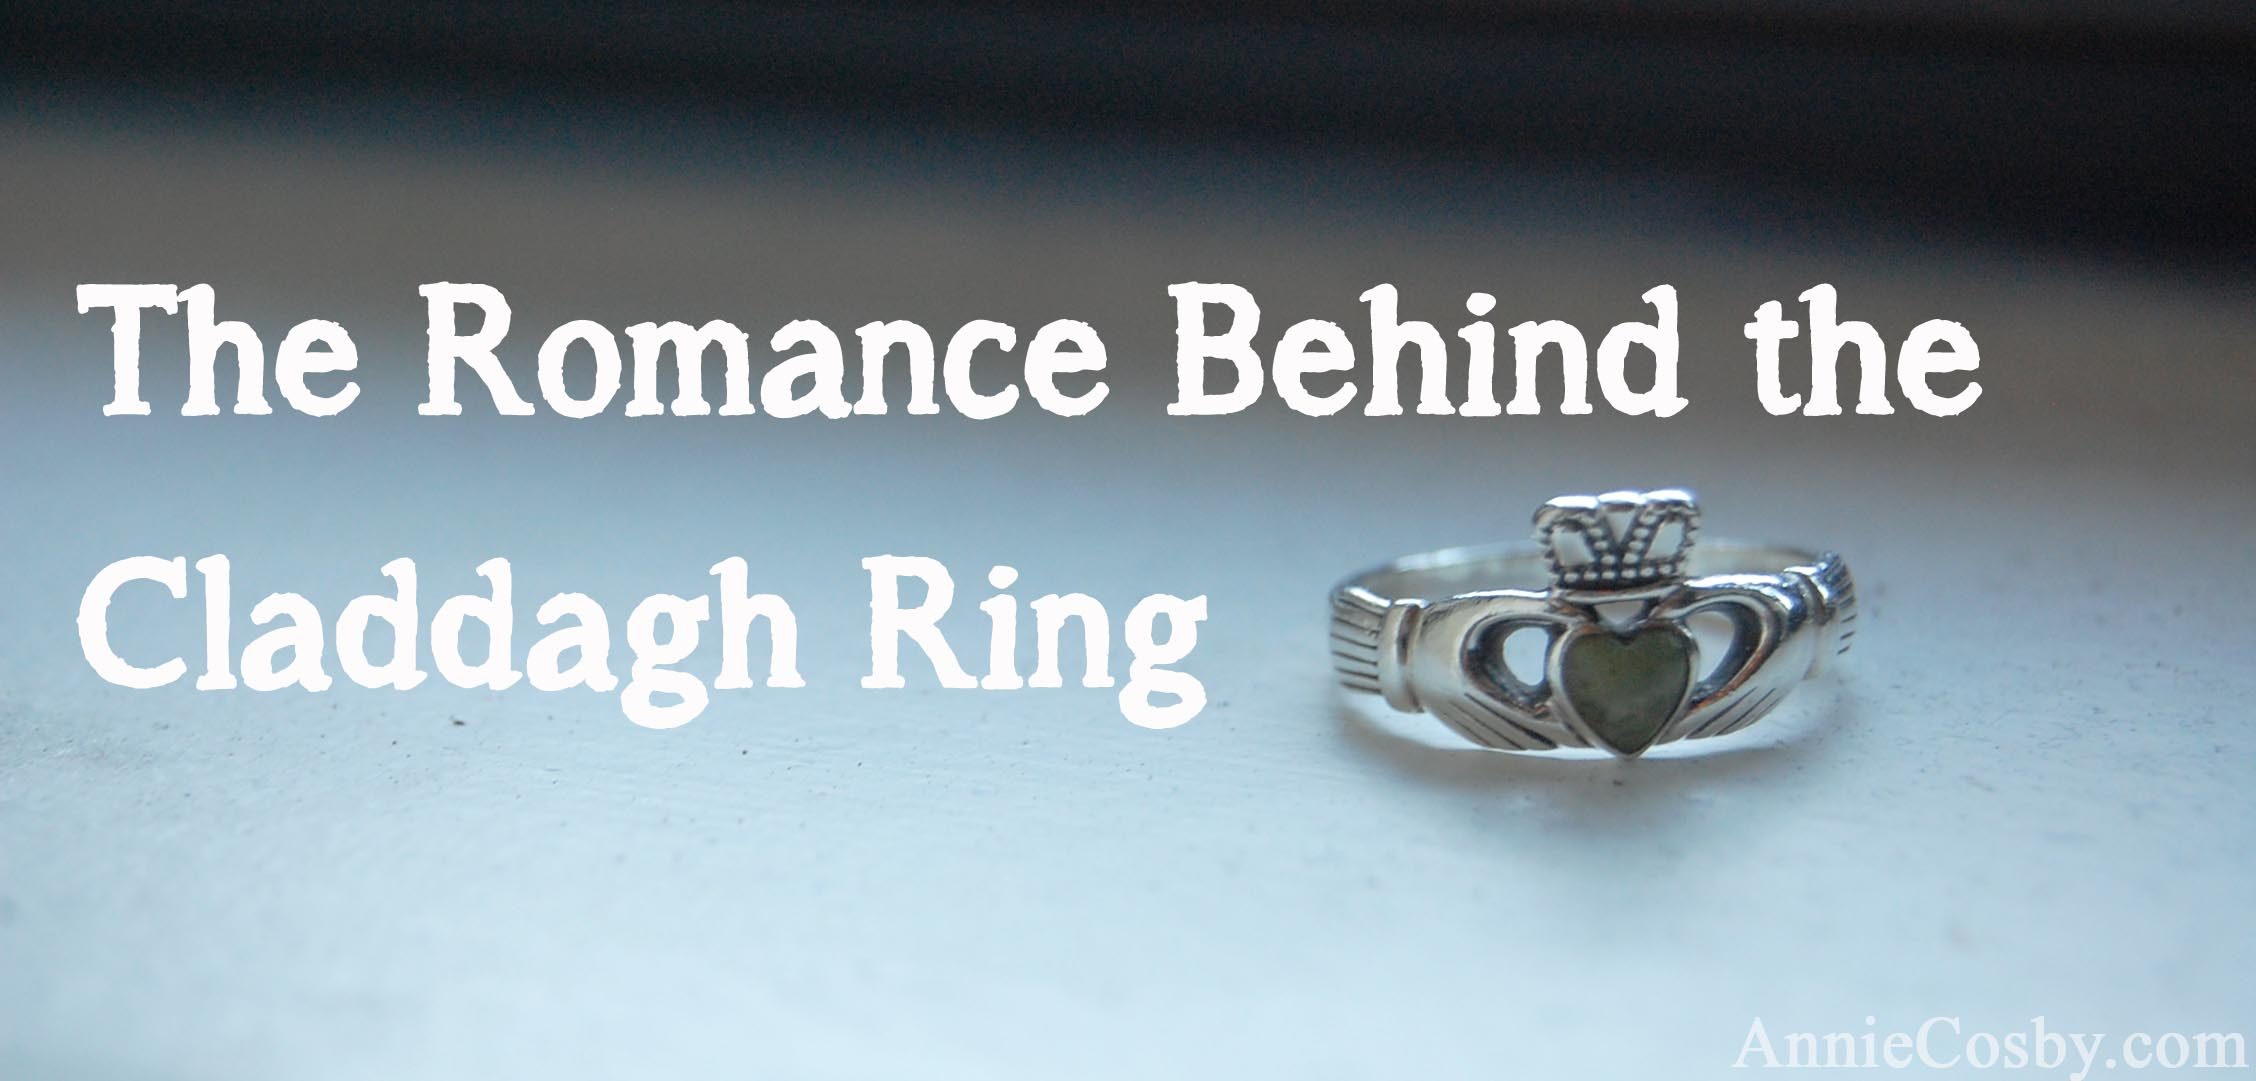 Claddagh ring romance